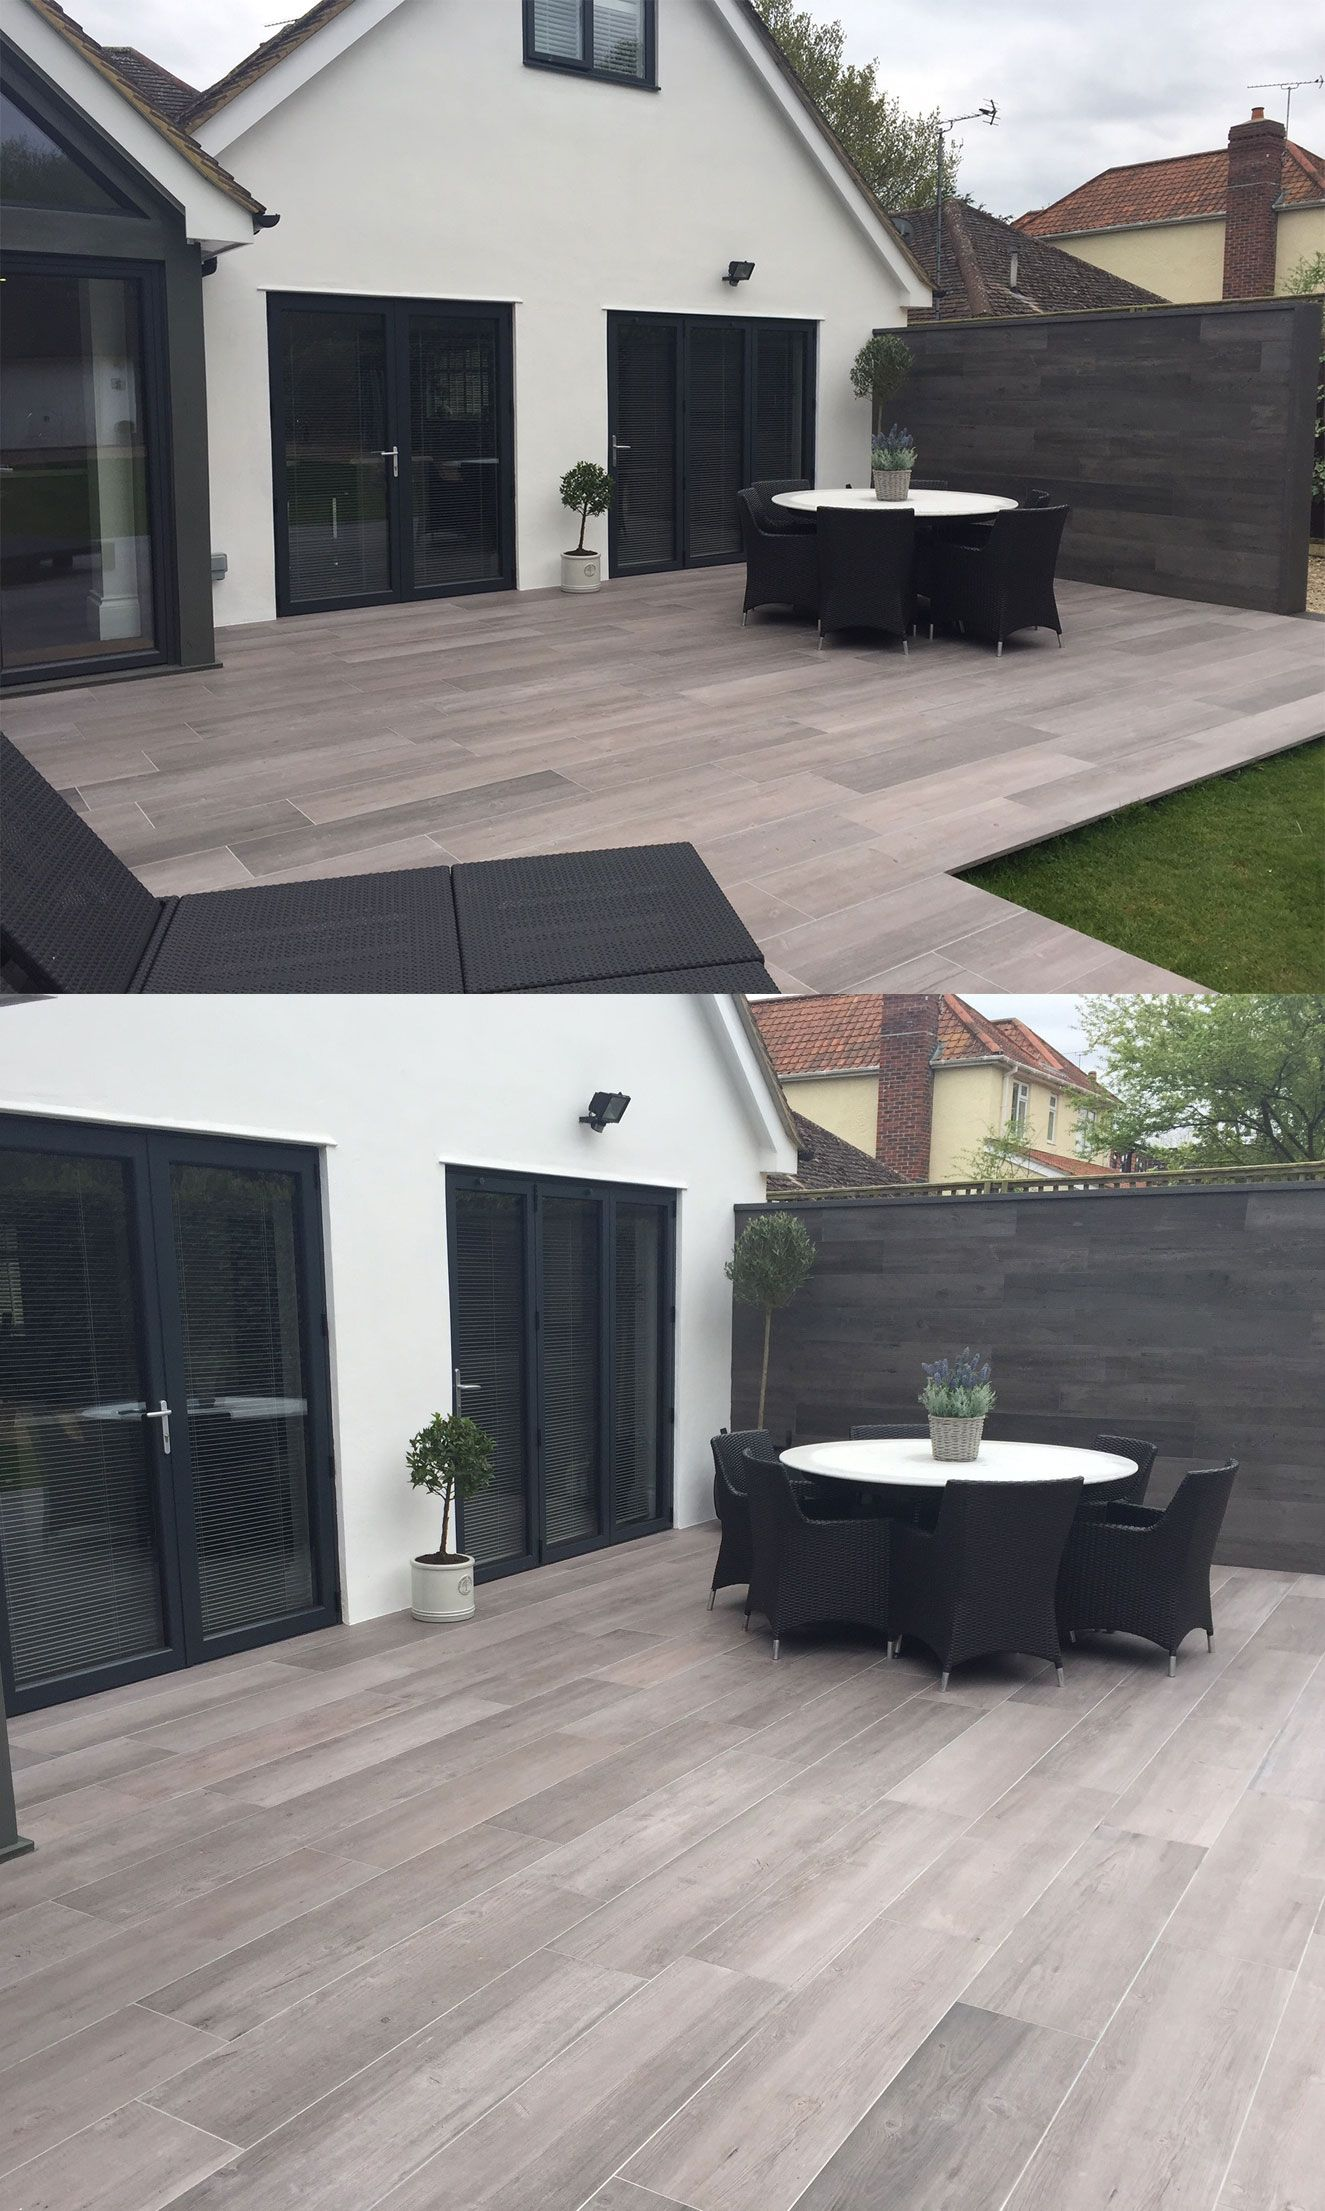 Great Modern Wood Effect Patio Created Using Valverdi